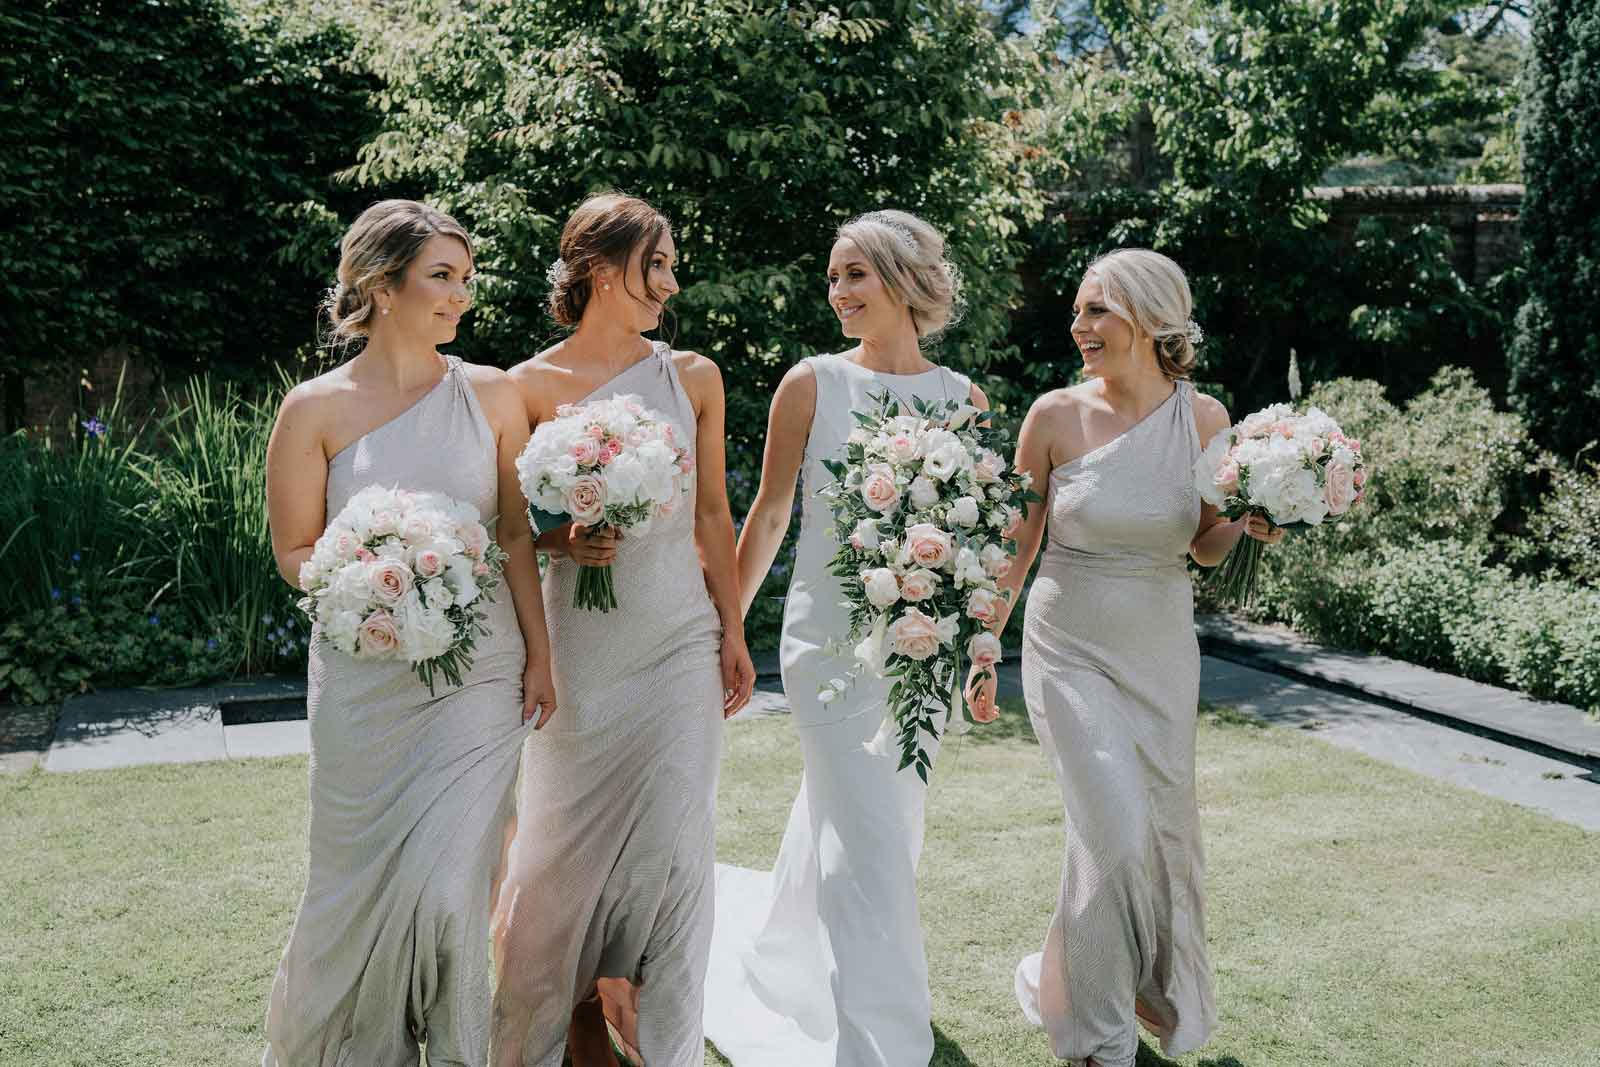 bridesmaids show their happiness for the bride